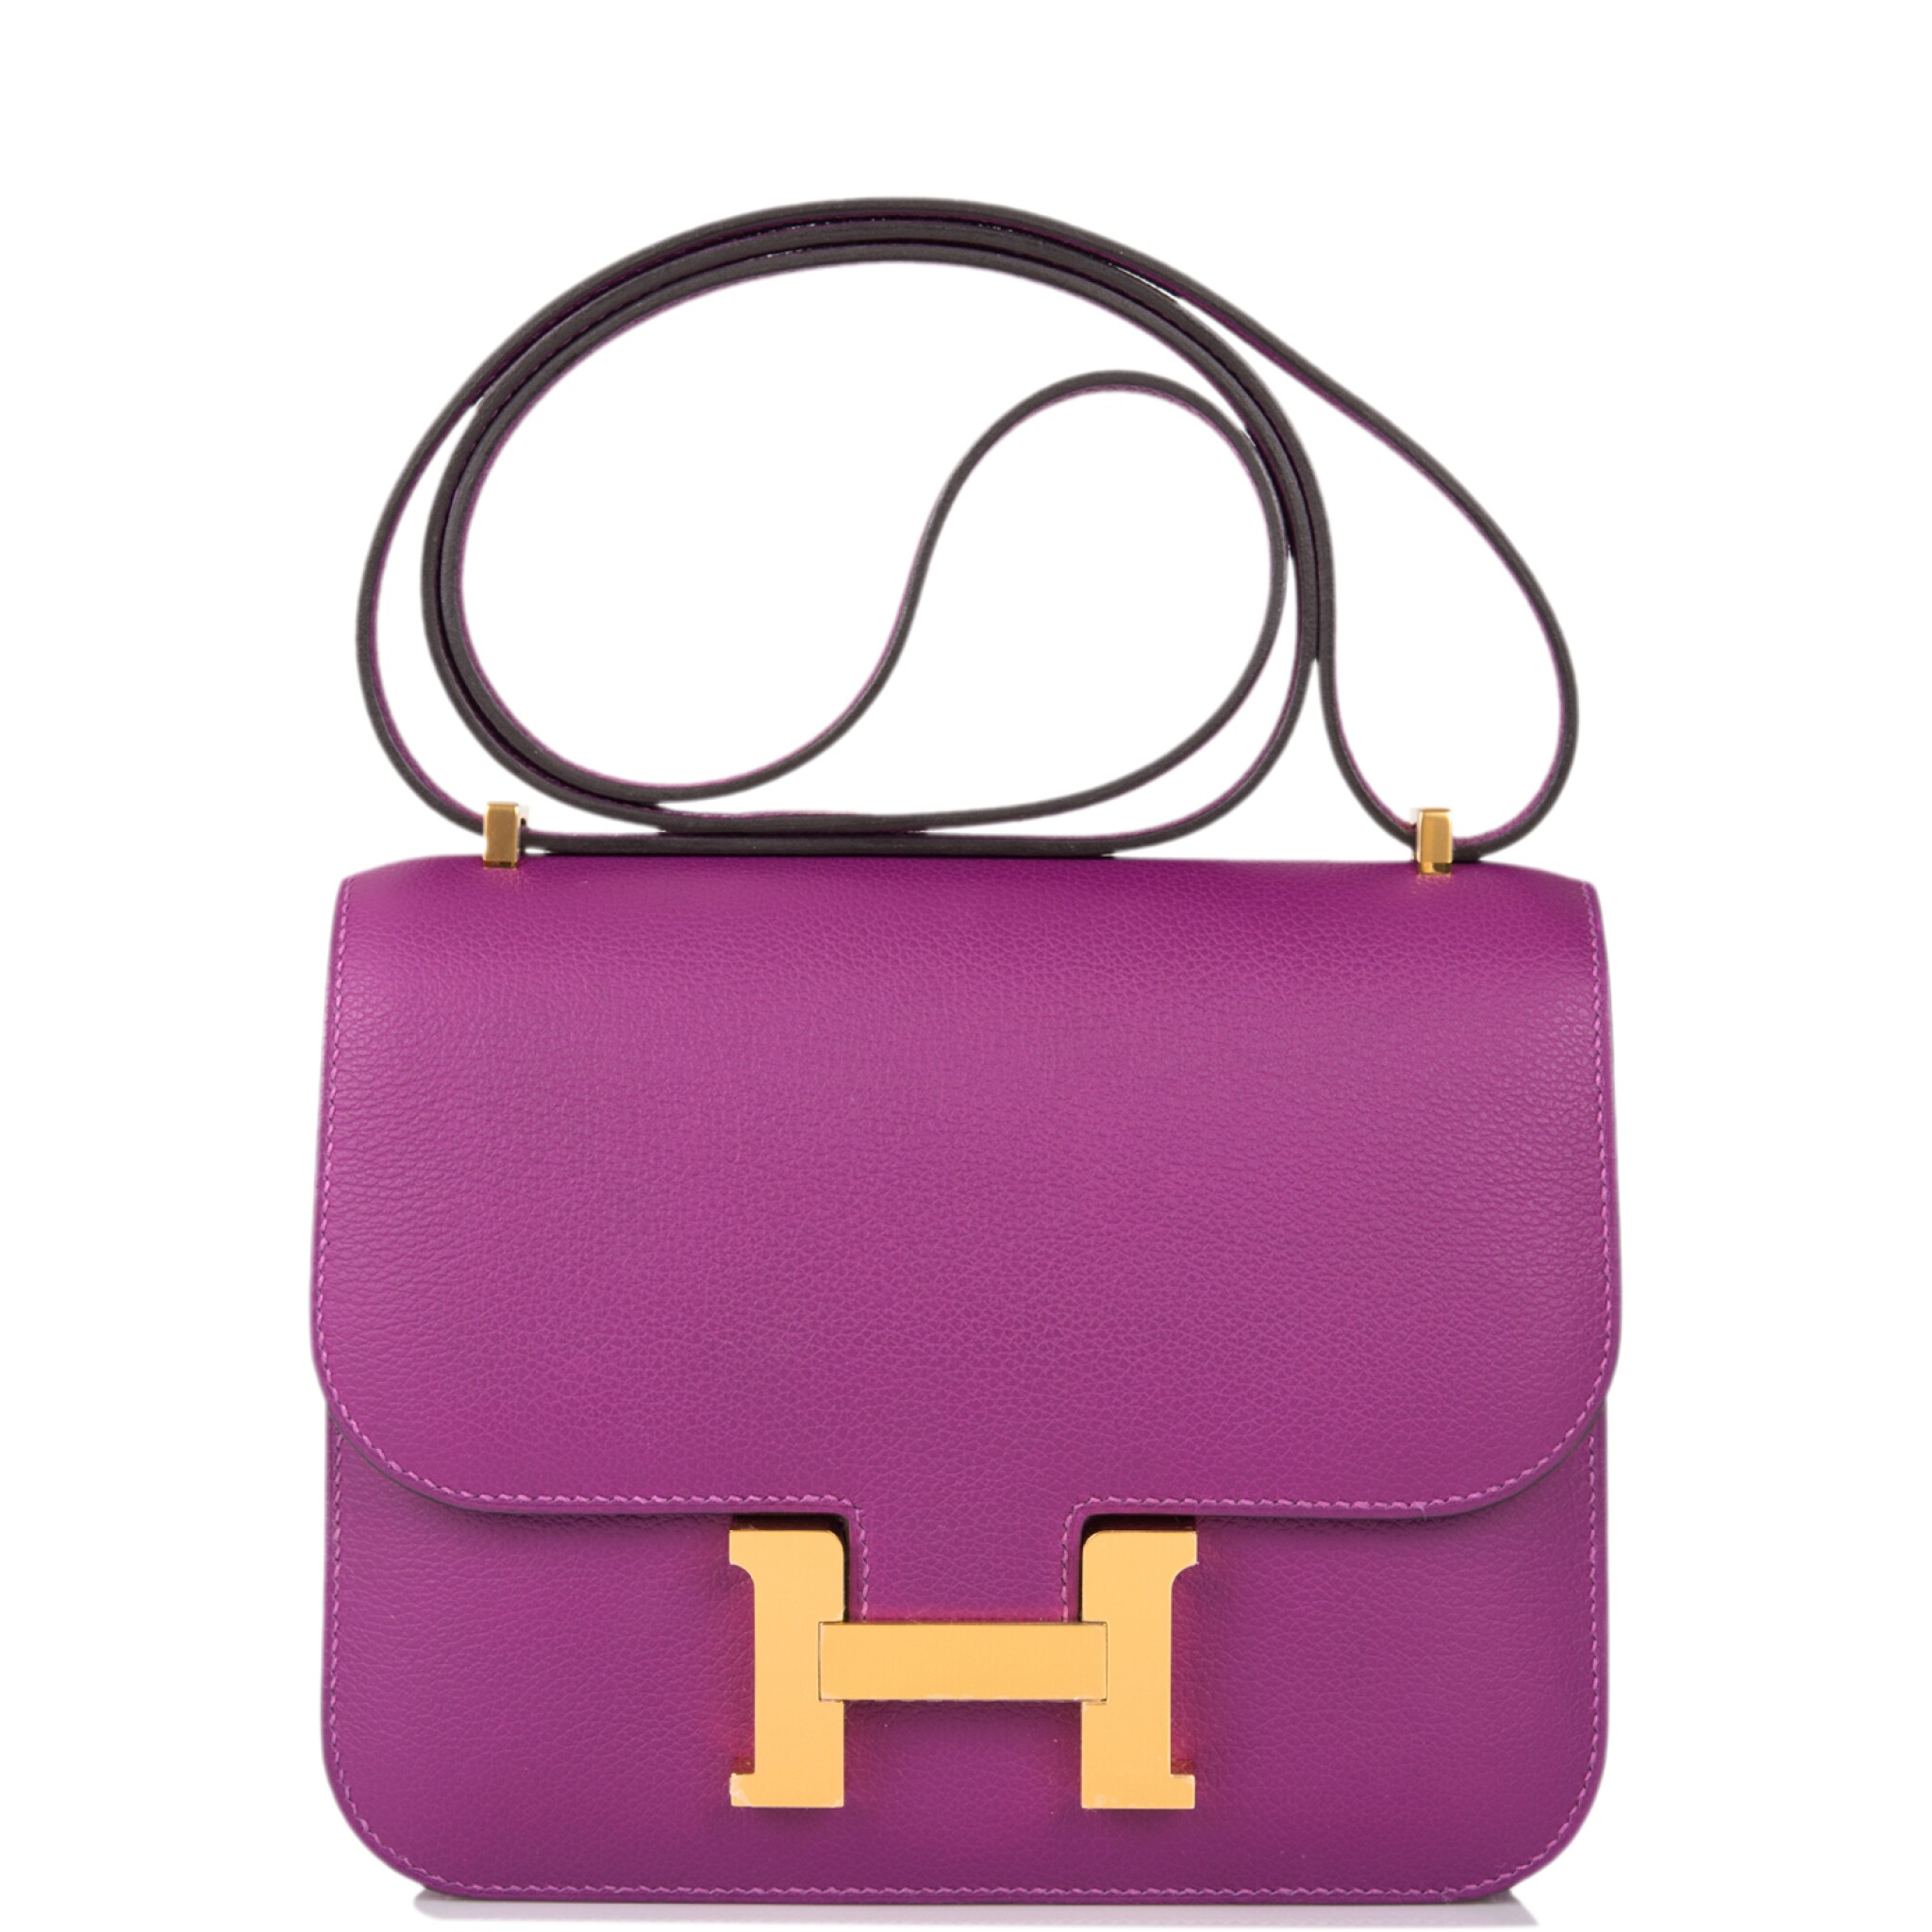 View full screen - View 1 of Lot 21. Hermès Anemone Constance 18cm of Evercolor Leather with Gold Hardware.